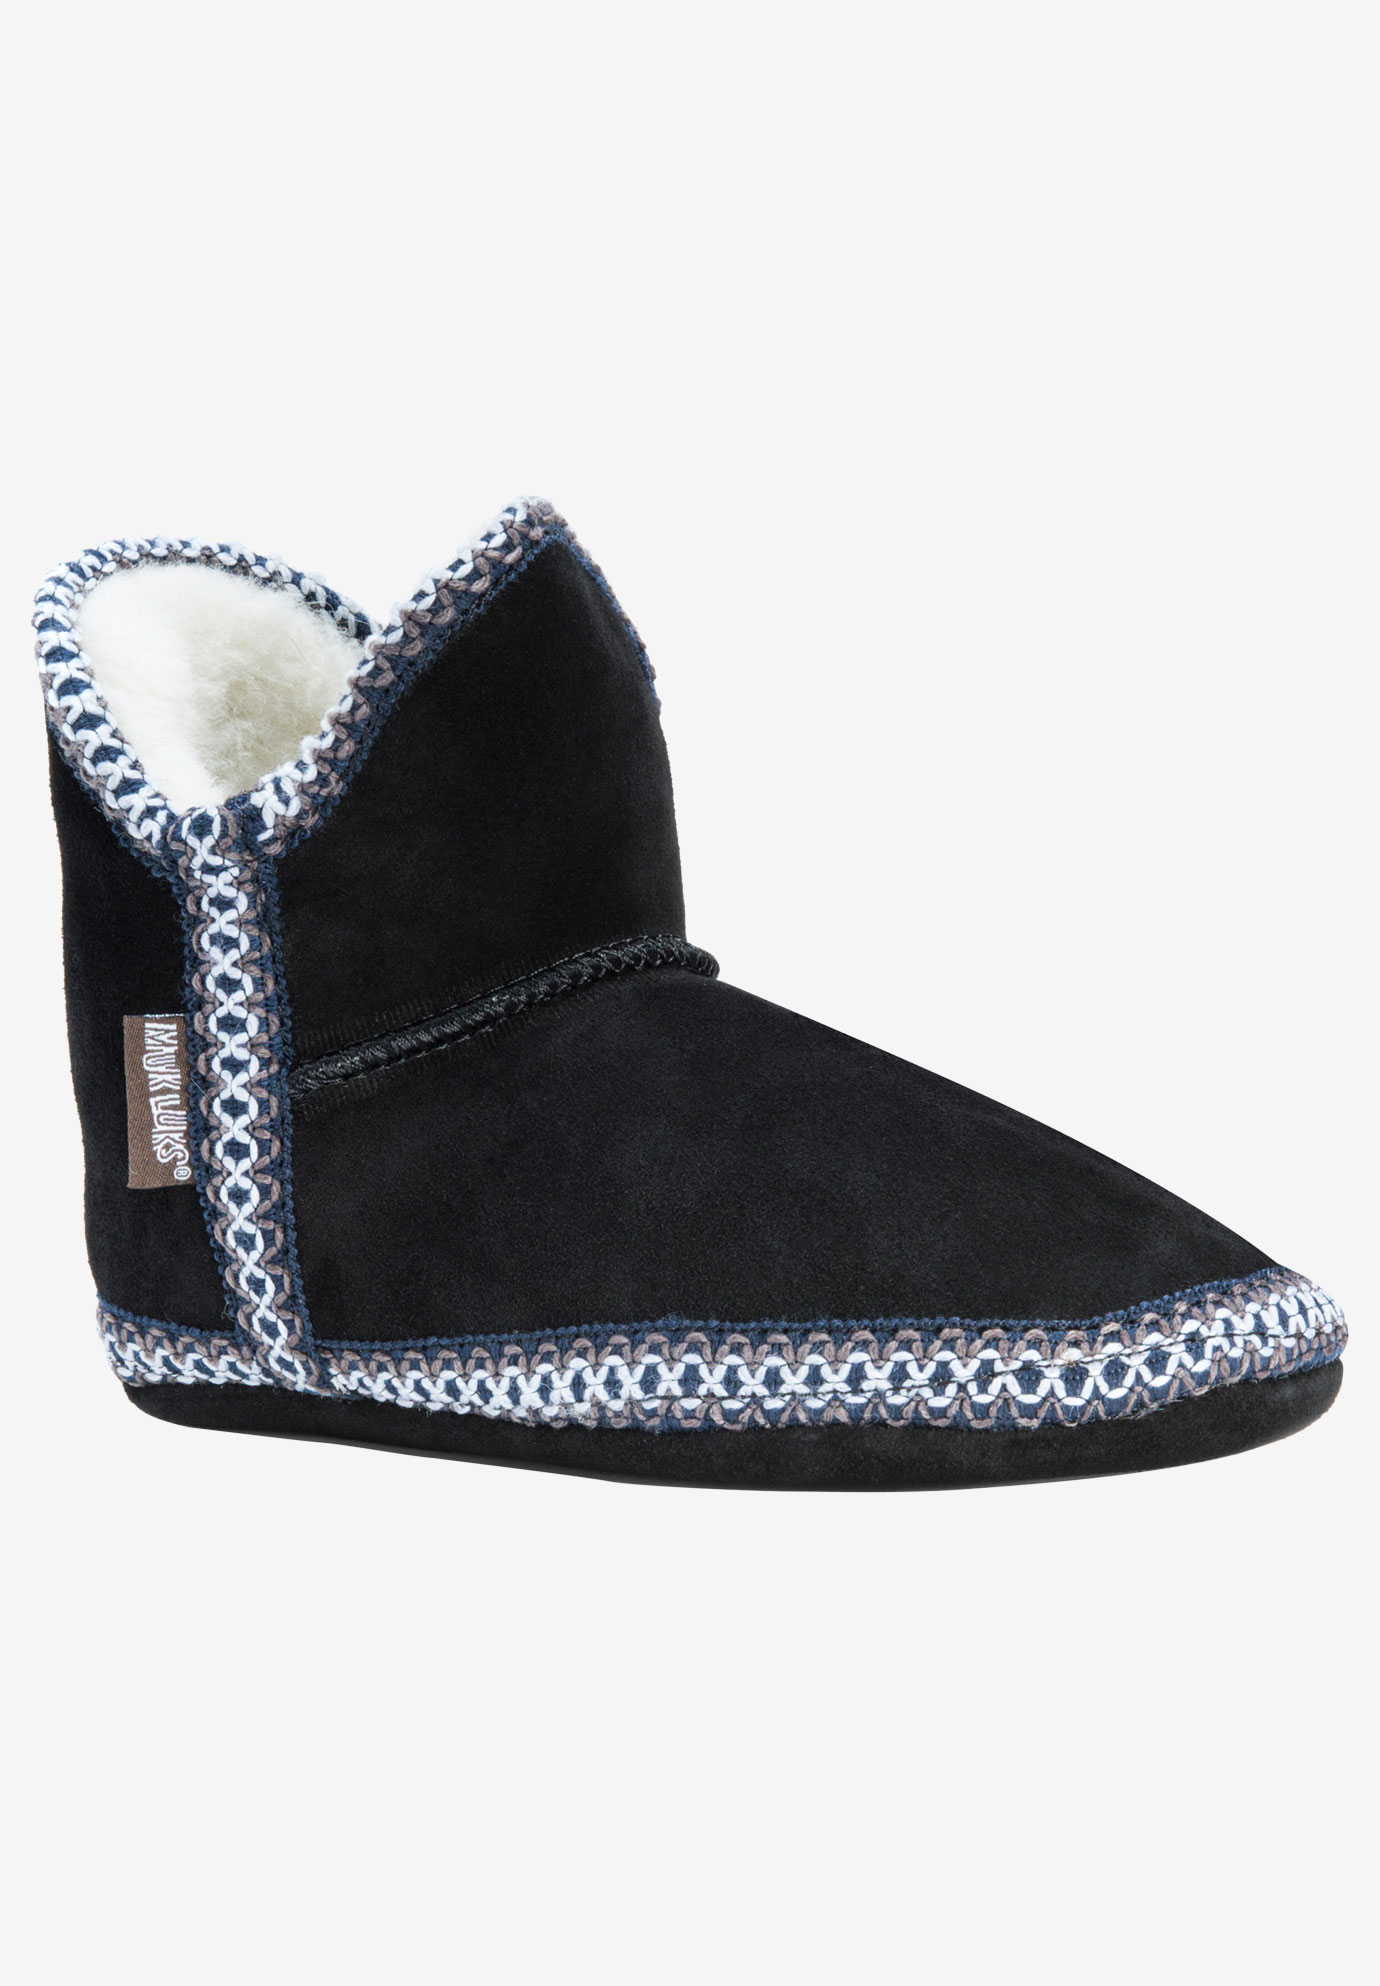 Maddy Amira Slipper by Muk Luks,